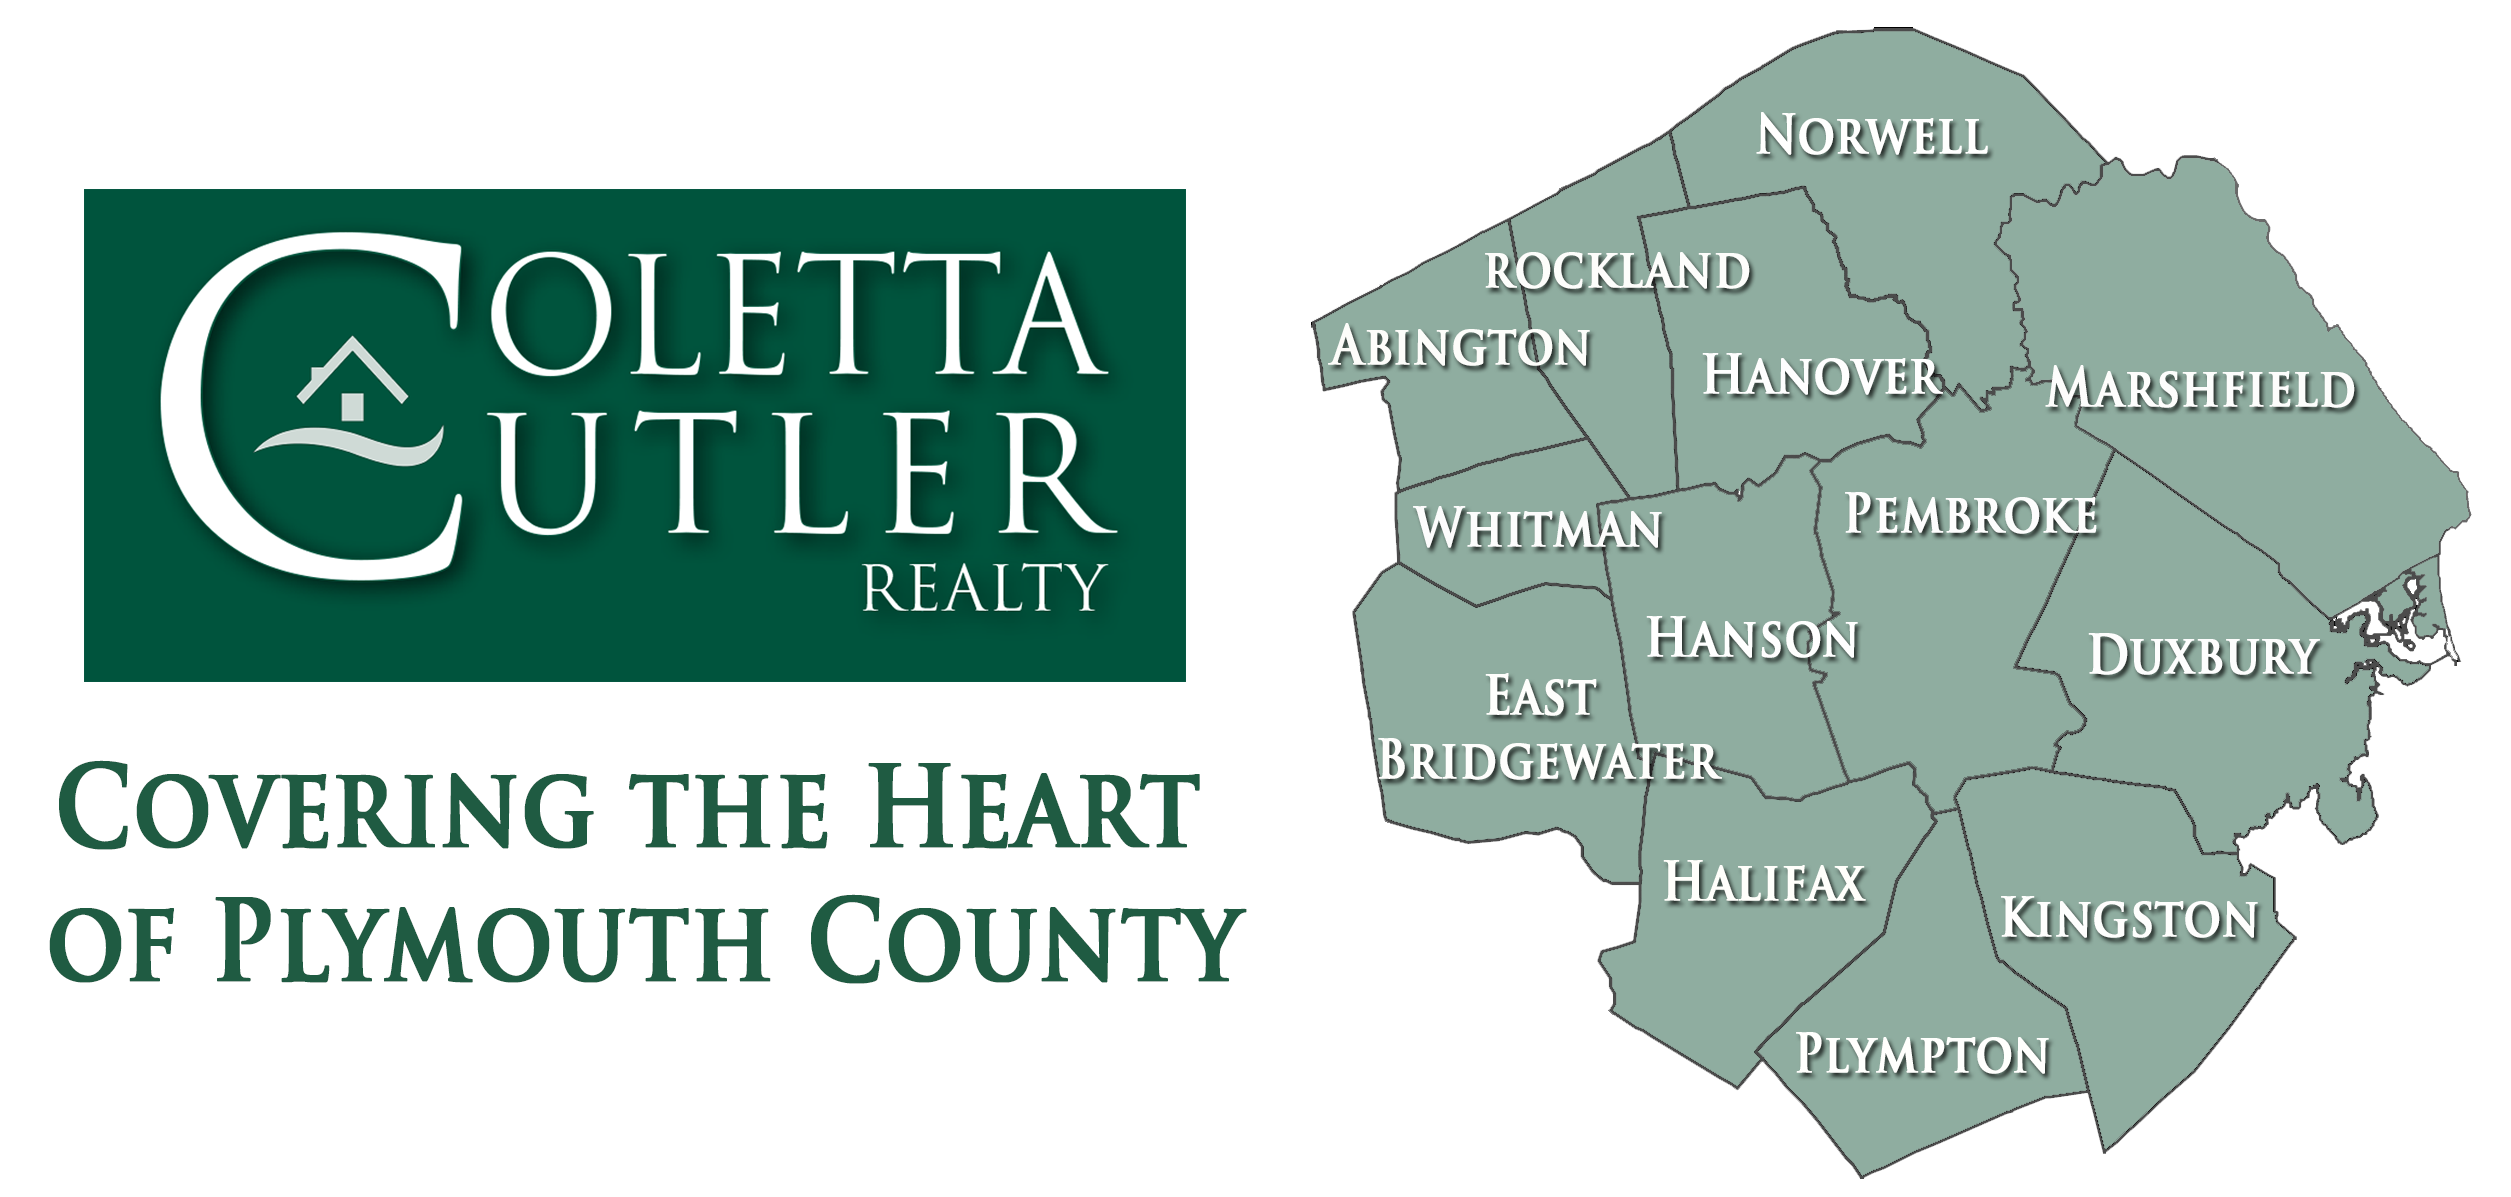 Coletta Cutler Realty